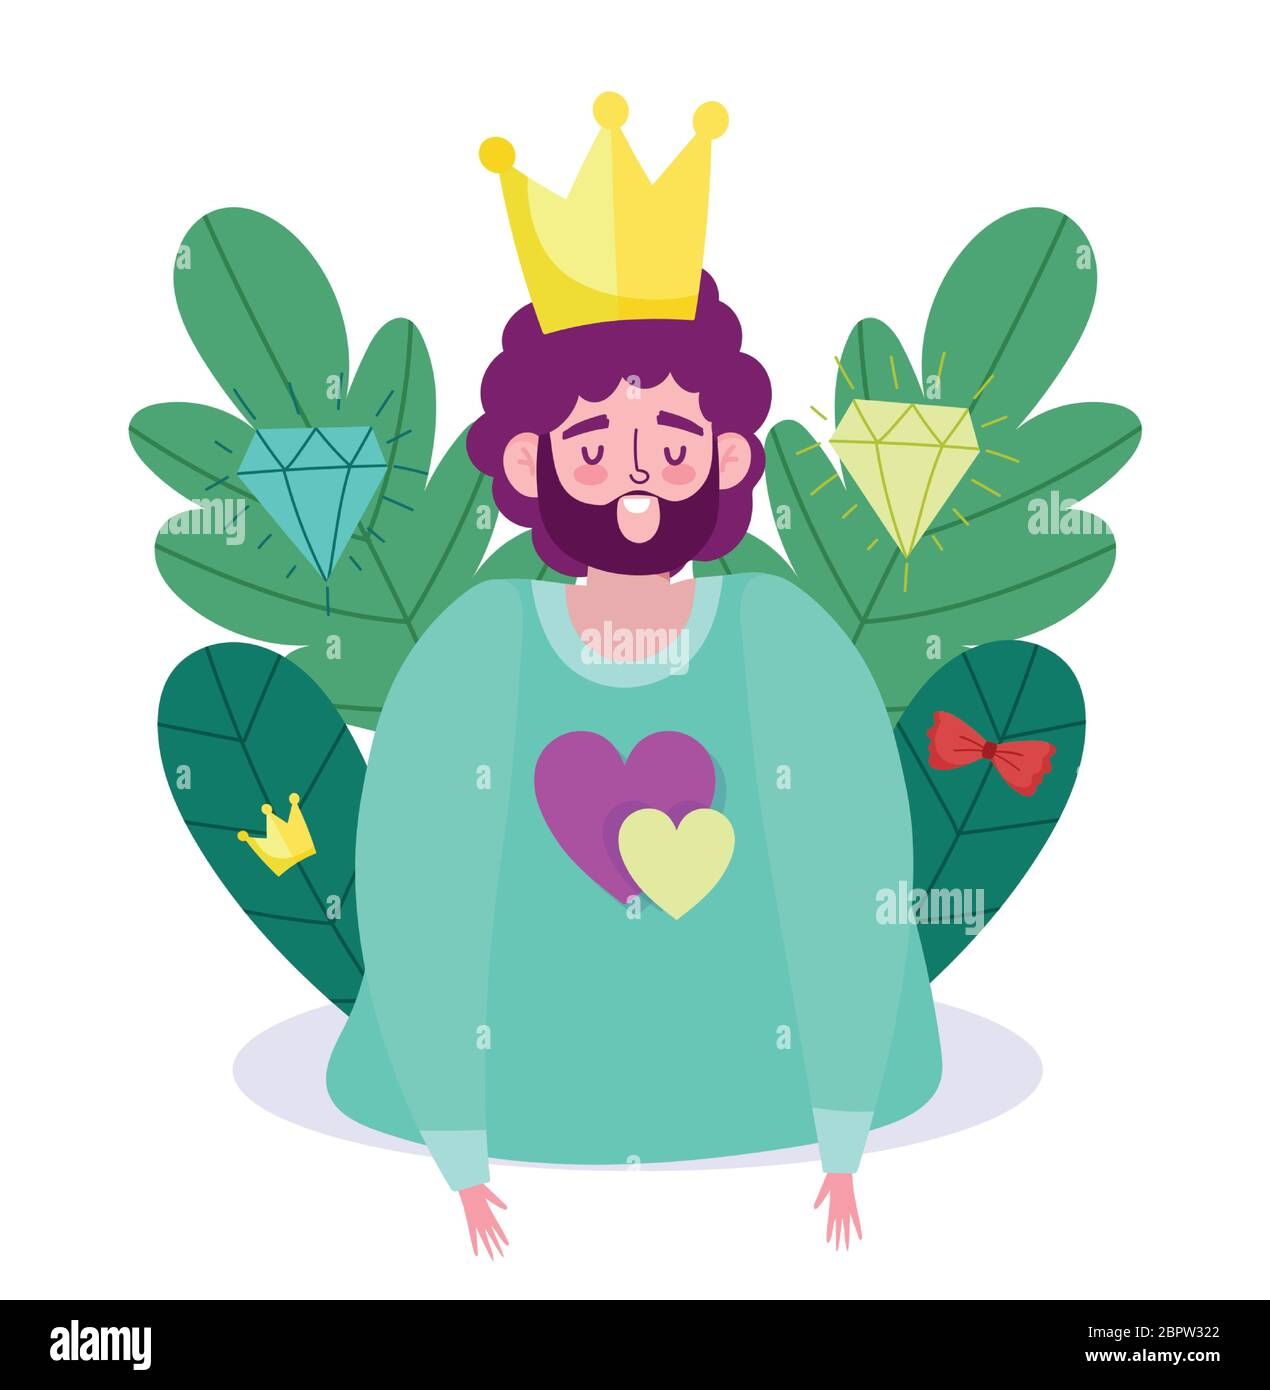 Avatar Man Cartoon With Crown Design Boy Male Person People Human Social Media And Portrait Theme Vector Illustration Stock Vector Image Art Alamy Dragon's crown sorceress lines by noflutter on deviantart. alamy